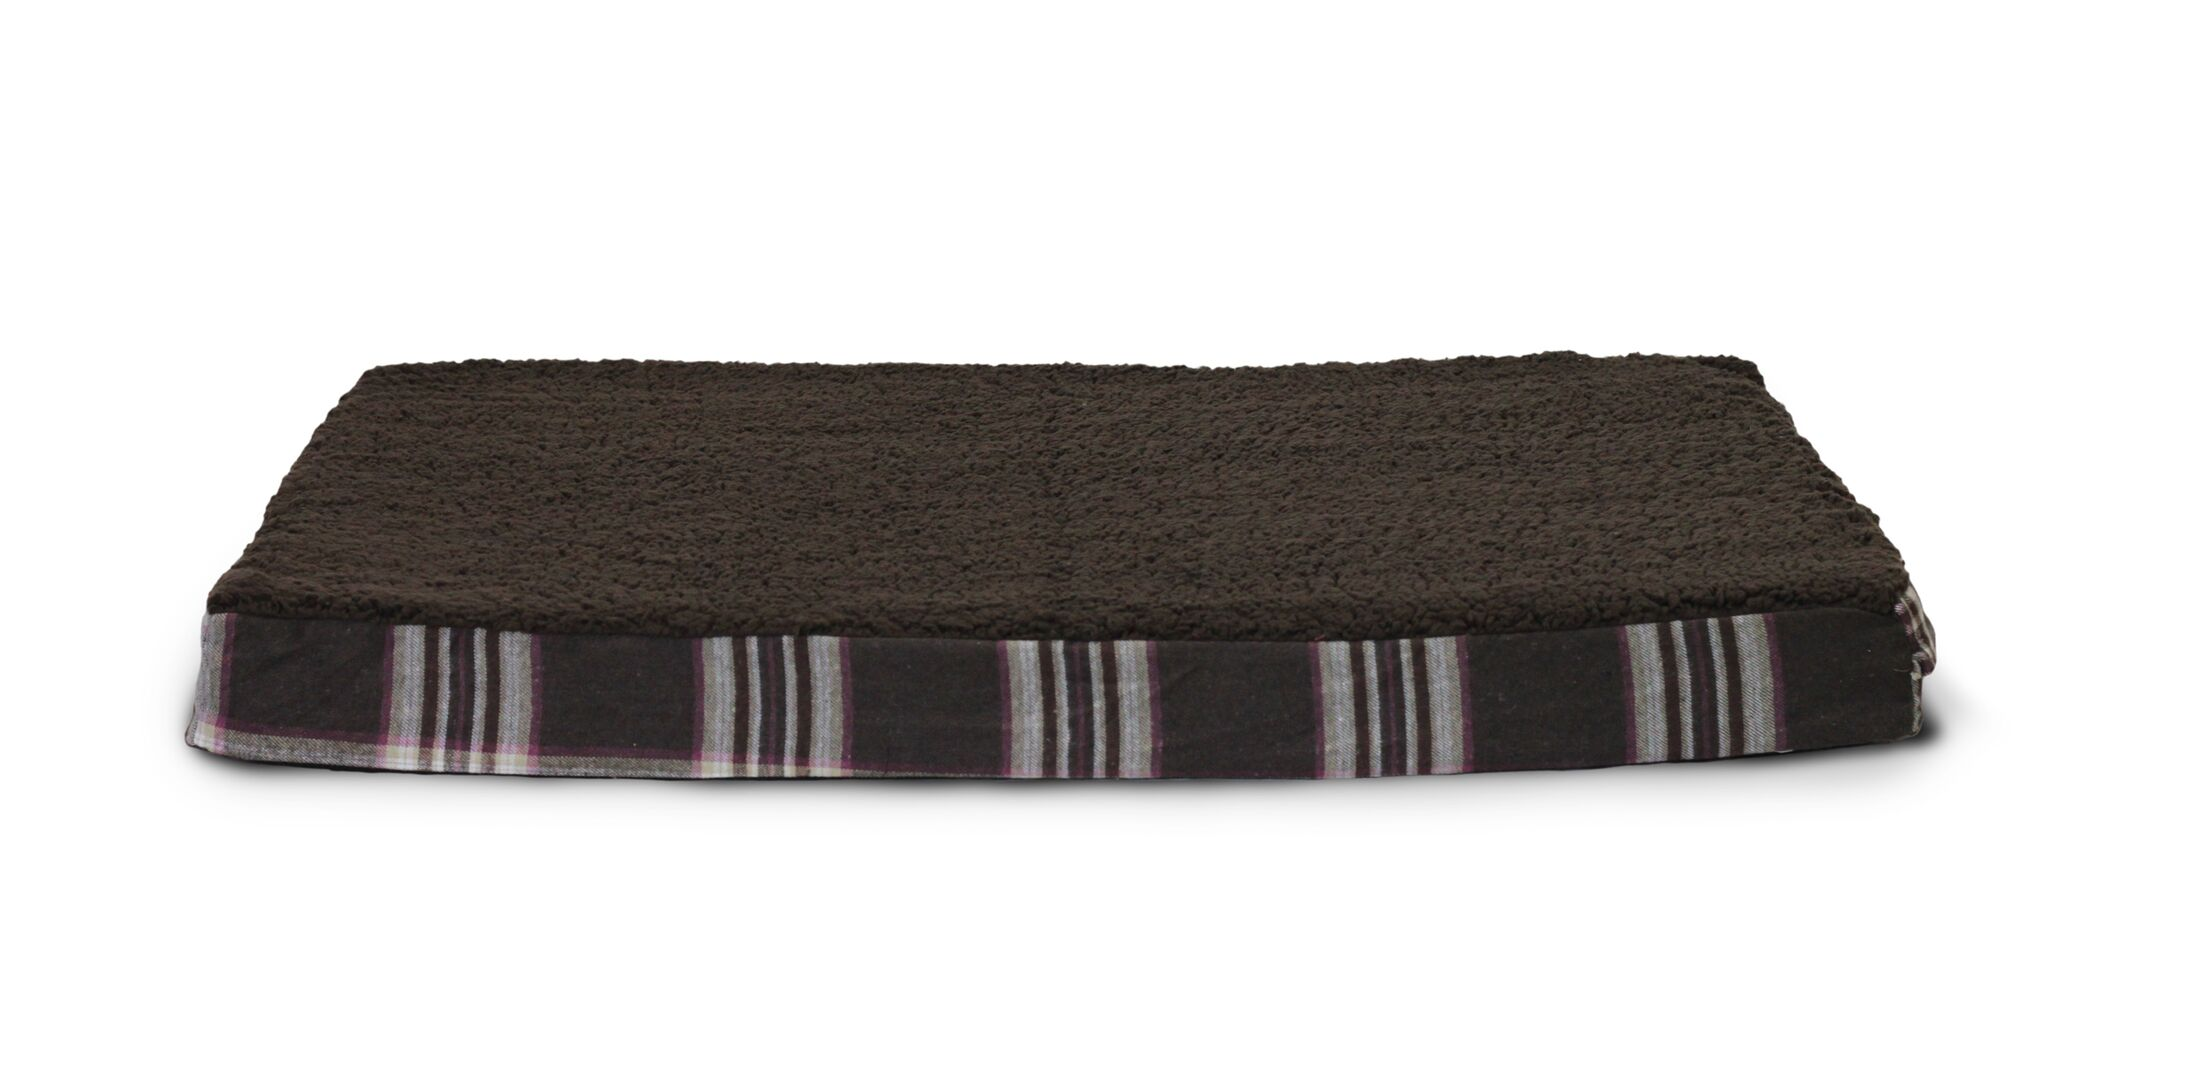 Evie Faux Sheepskin and Plaid Orthopedic Pet Bed Size: Large - 36